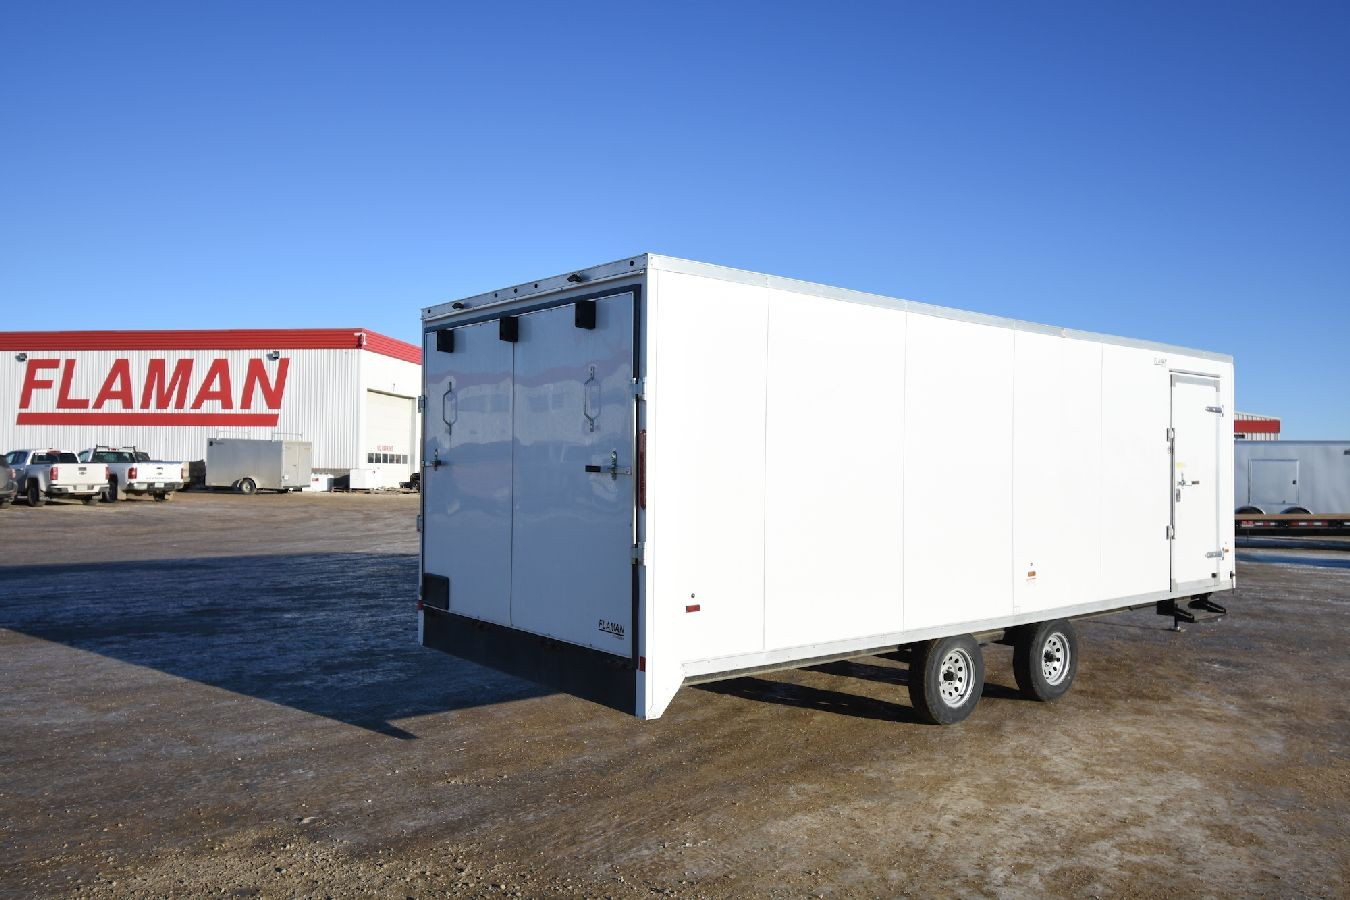 Hazardous Household Waste additionally Trailer Mounted Portable Self Contained Hot Water Pressure Machine besides 7 Wide Inline 137 also Driving 2016 Model Year Volvo Vn furthermore B Train trailers for sale. on summit dump trailers